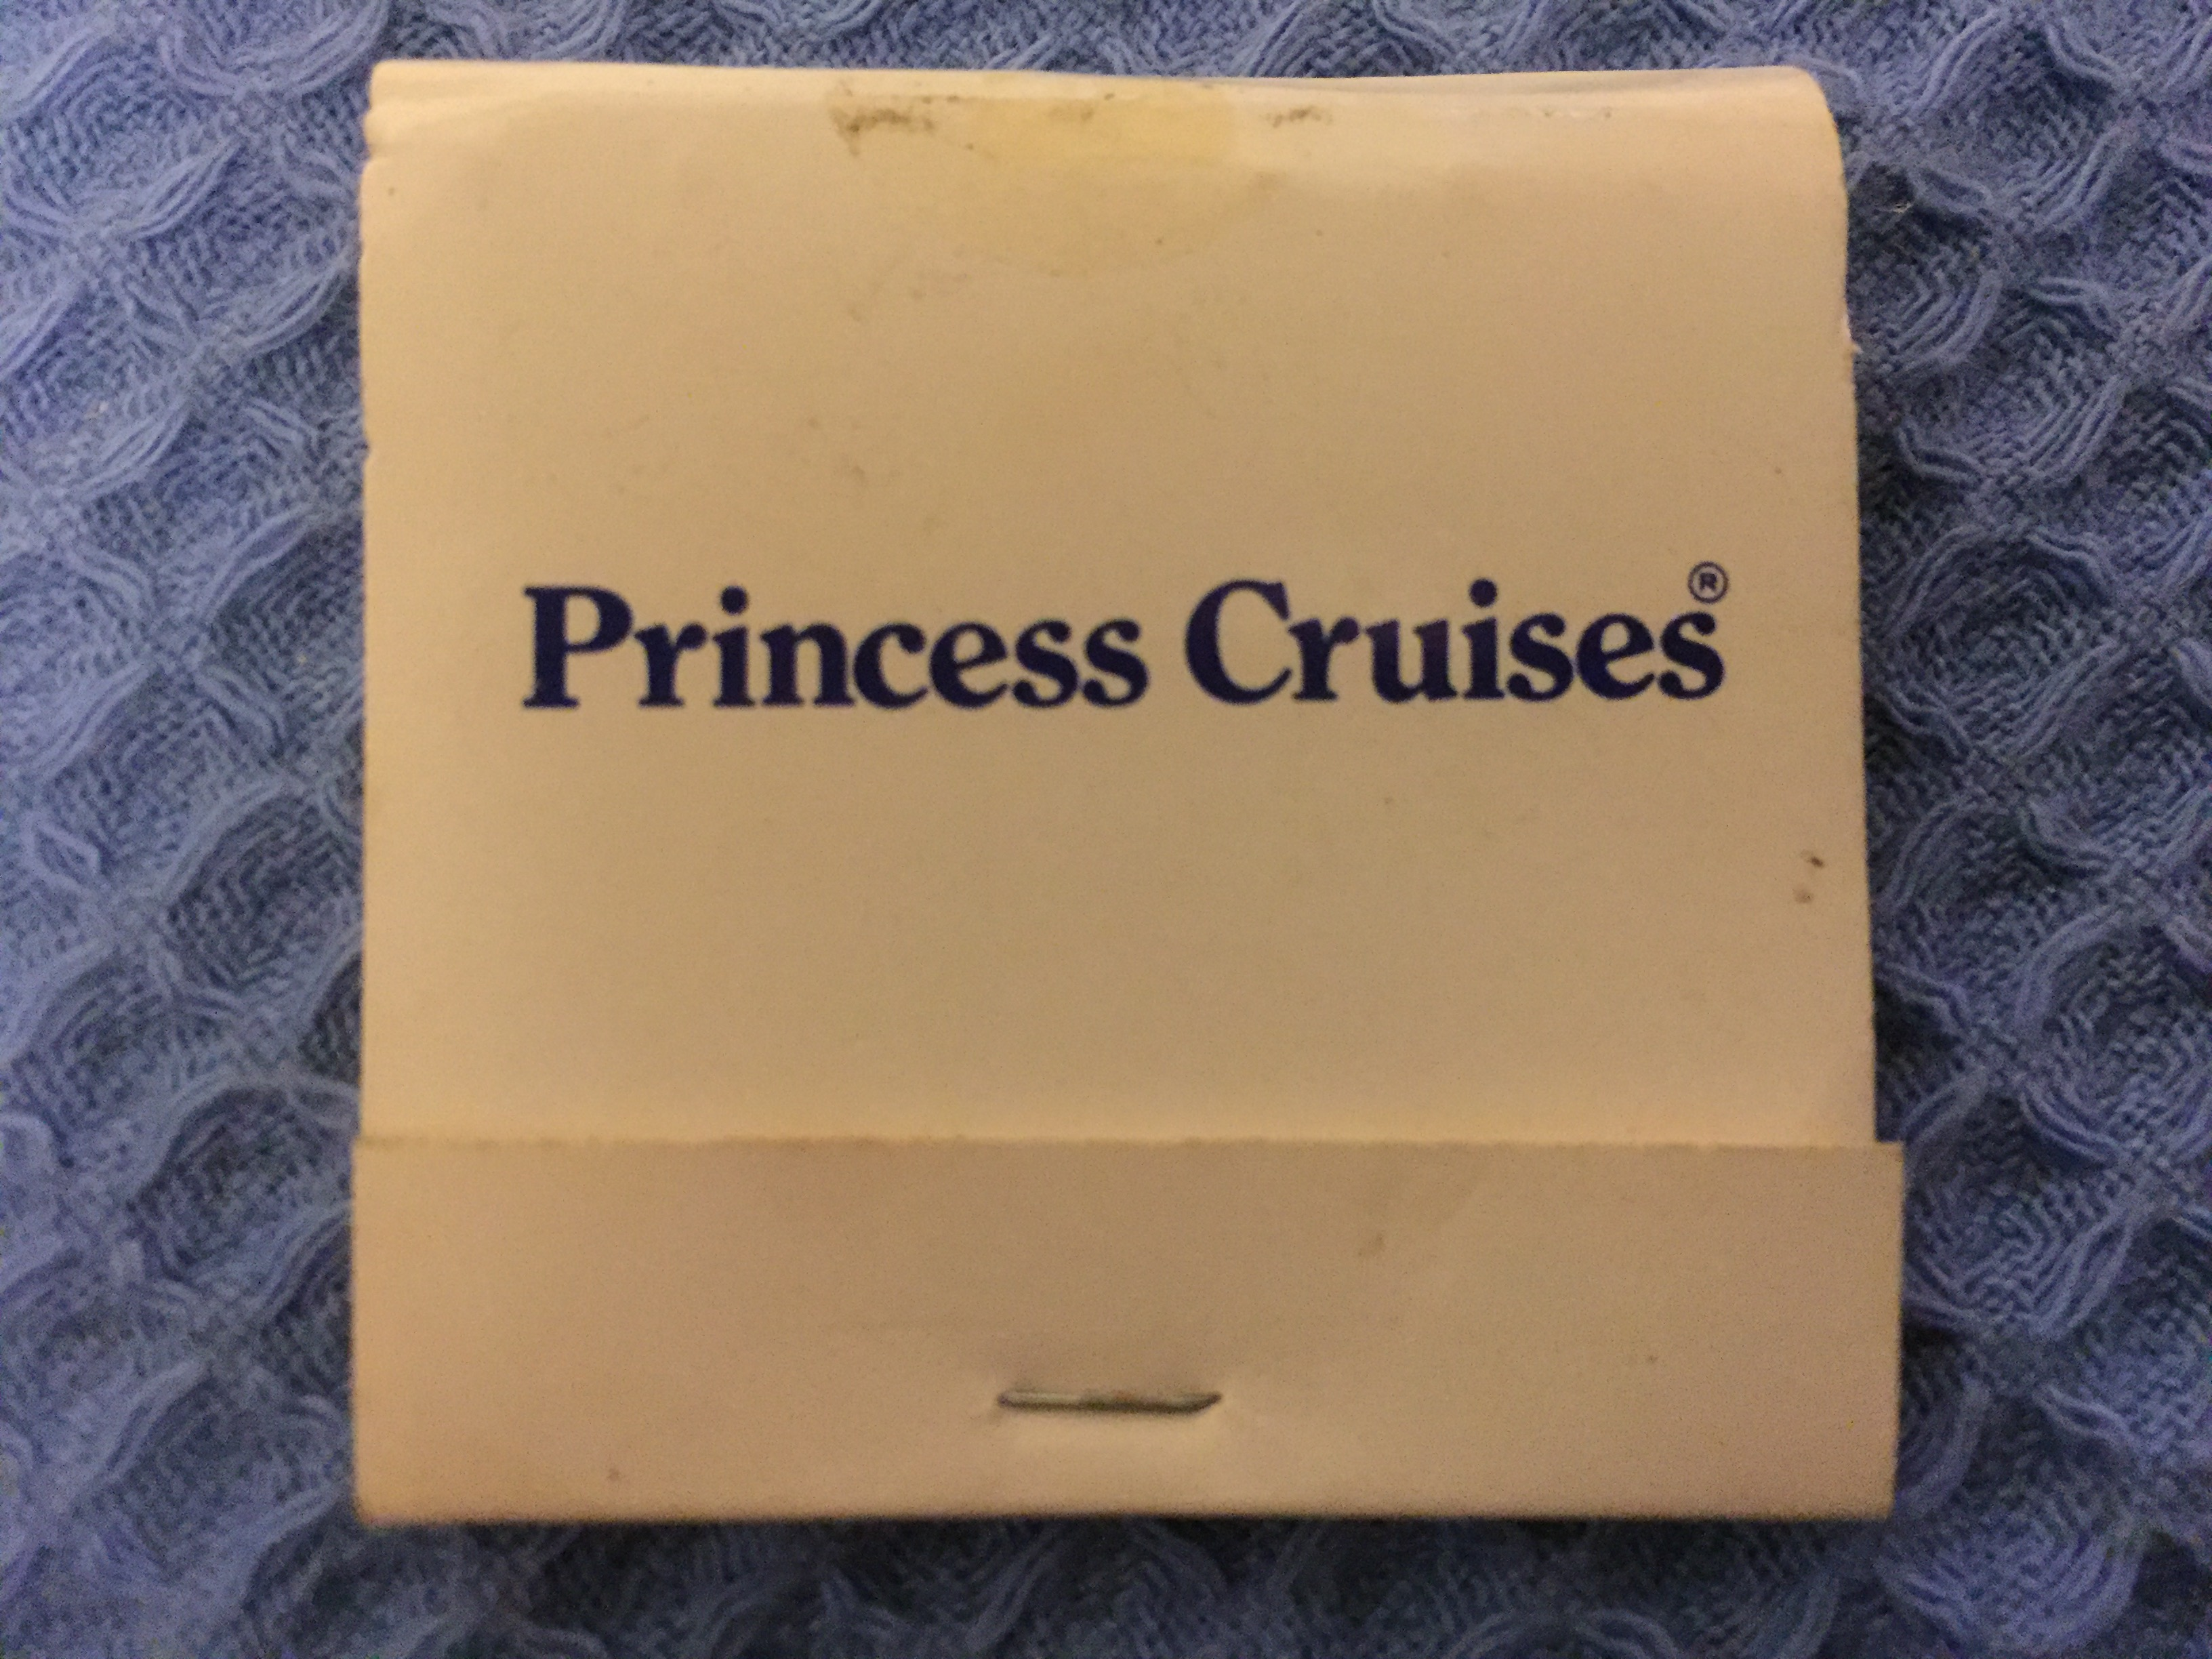 UNUSED FLAT PACK BOX OF MATCHES FROM THE PRINCESS CRUISES LINE